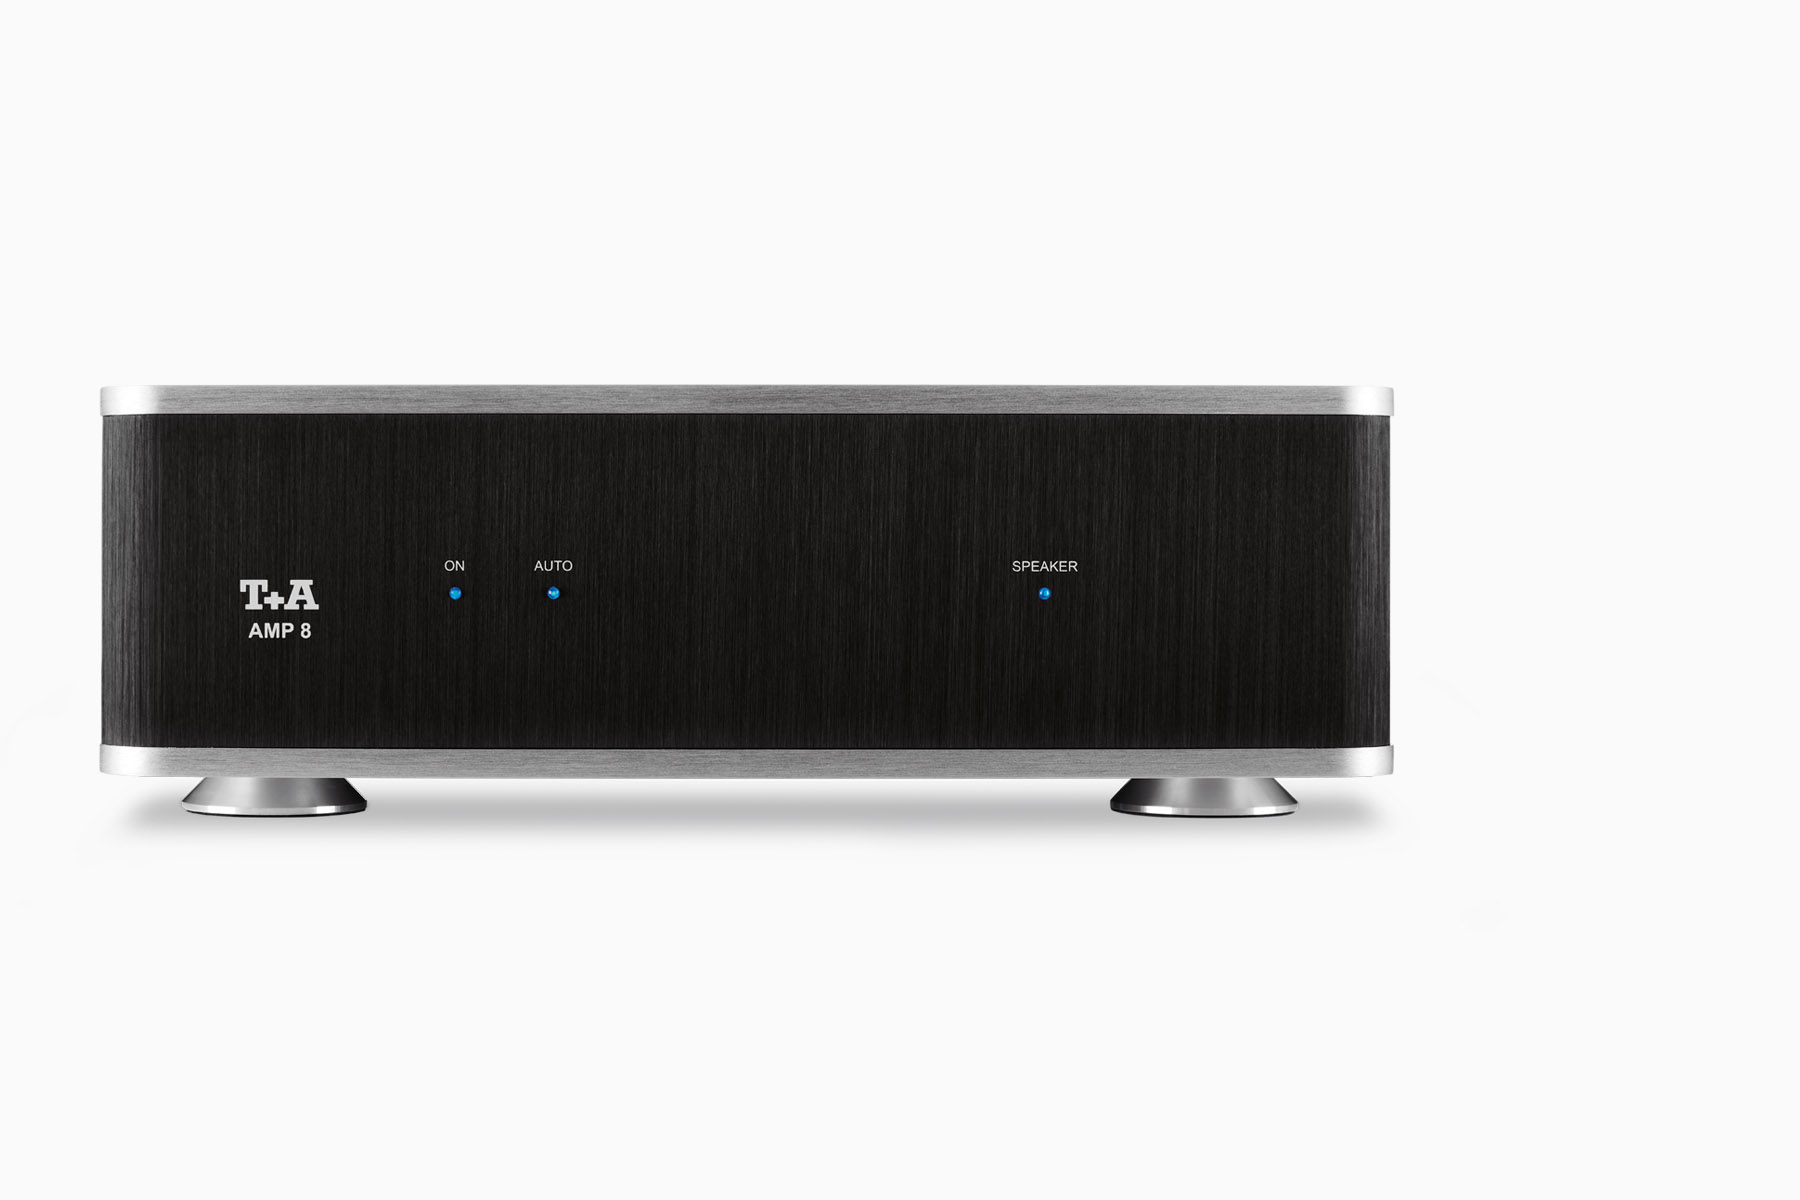 Amp 8 High End Amplifier Class A Power With 60 Watts Output The Sounds Sensational Vigorous Dynamic Resolution Yet Delicate Subtle And Audiophile Combination Of Dac Sets New Standards